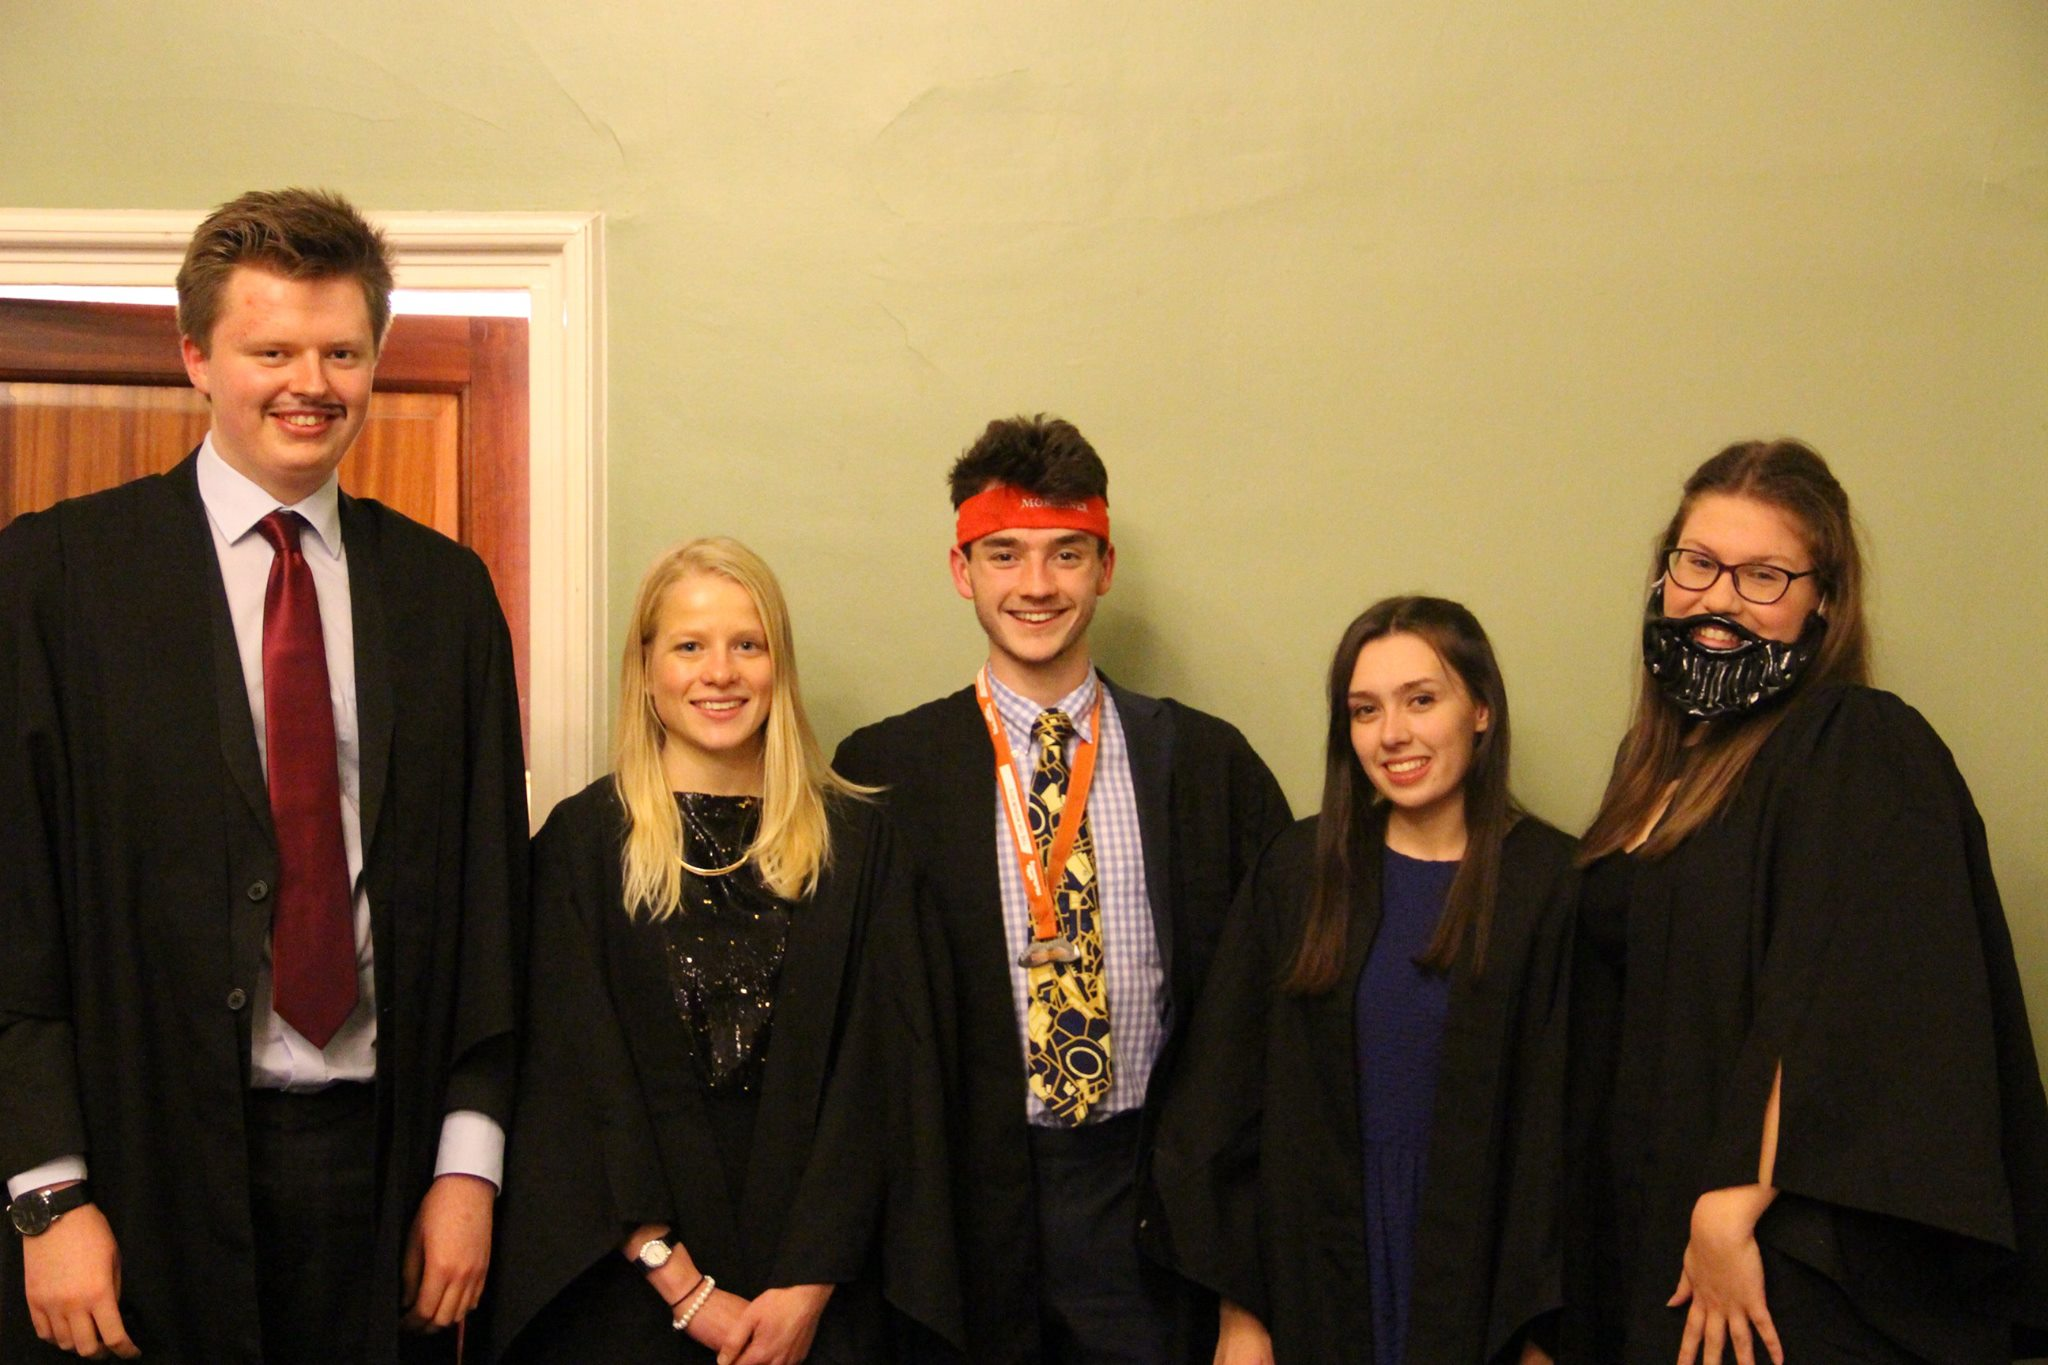 Charities Committee Exec 2015/16